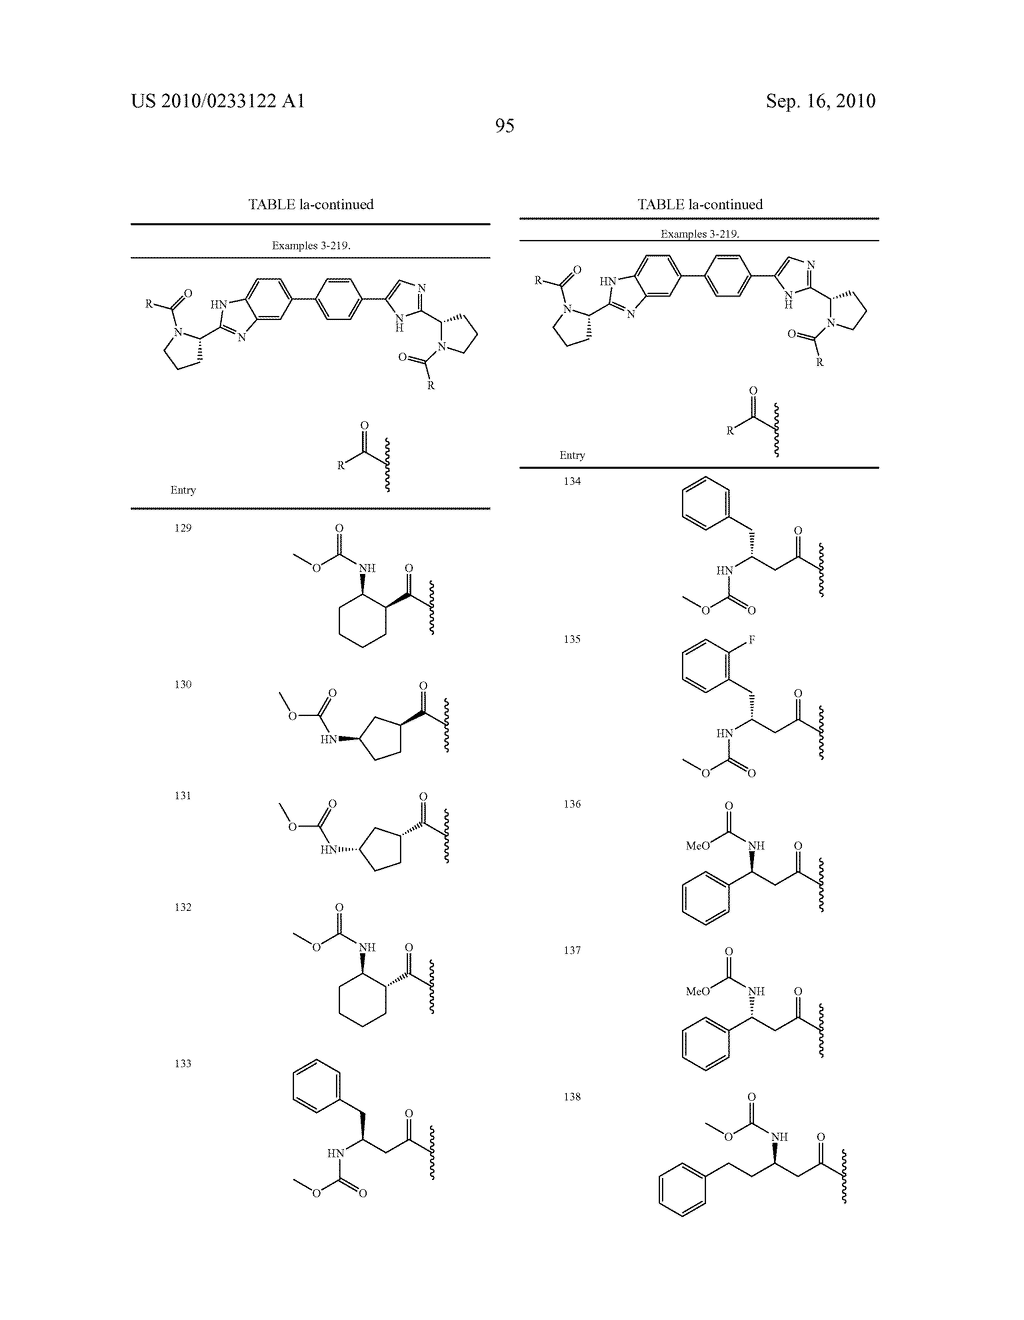 NOVEL BENZIMIDAZOLE DERIVATIVES - diagram, schematic, and image 96